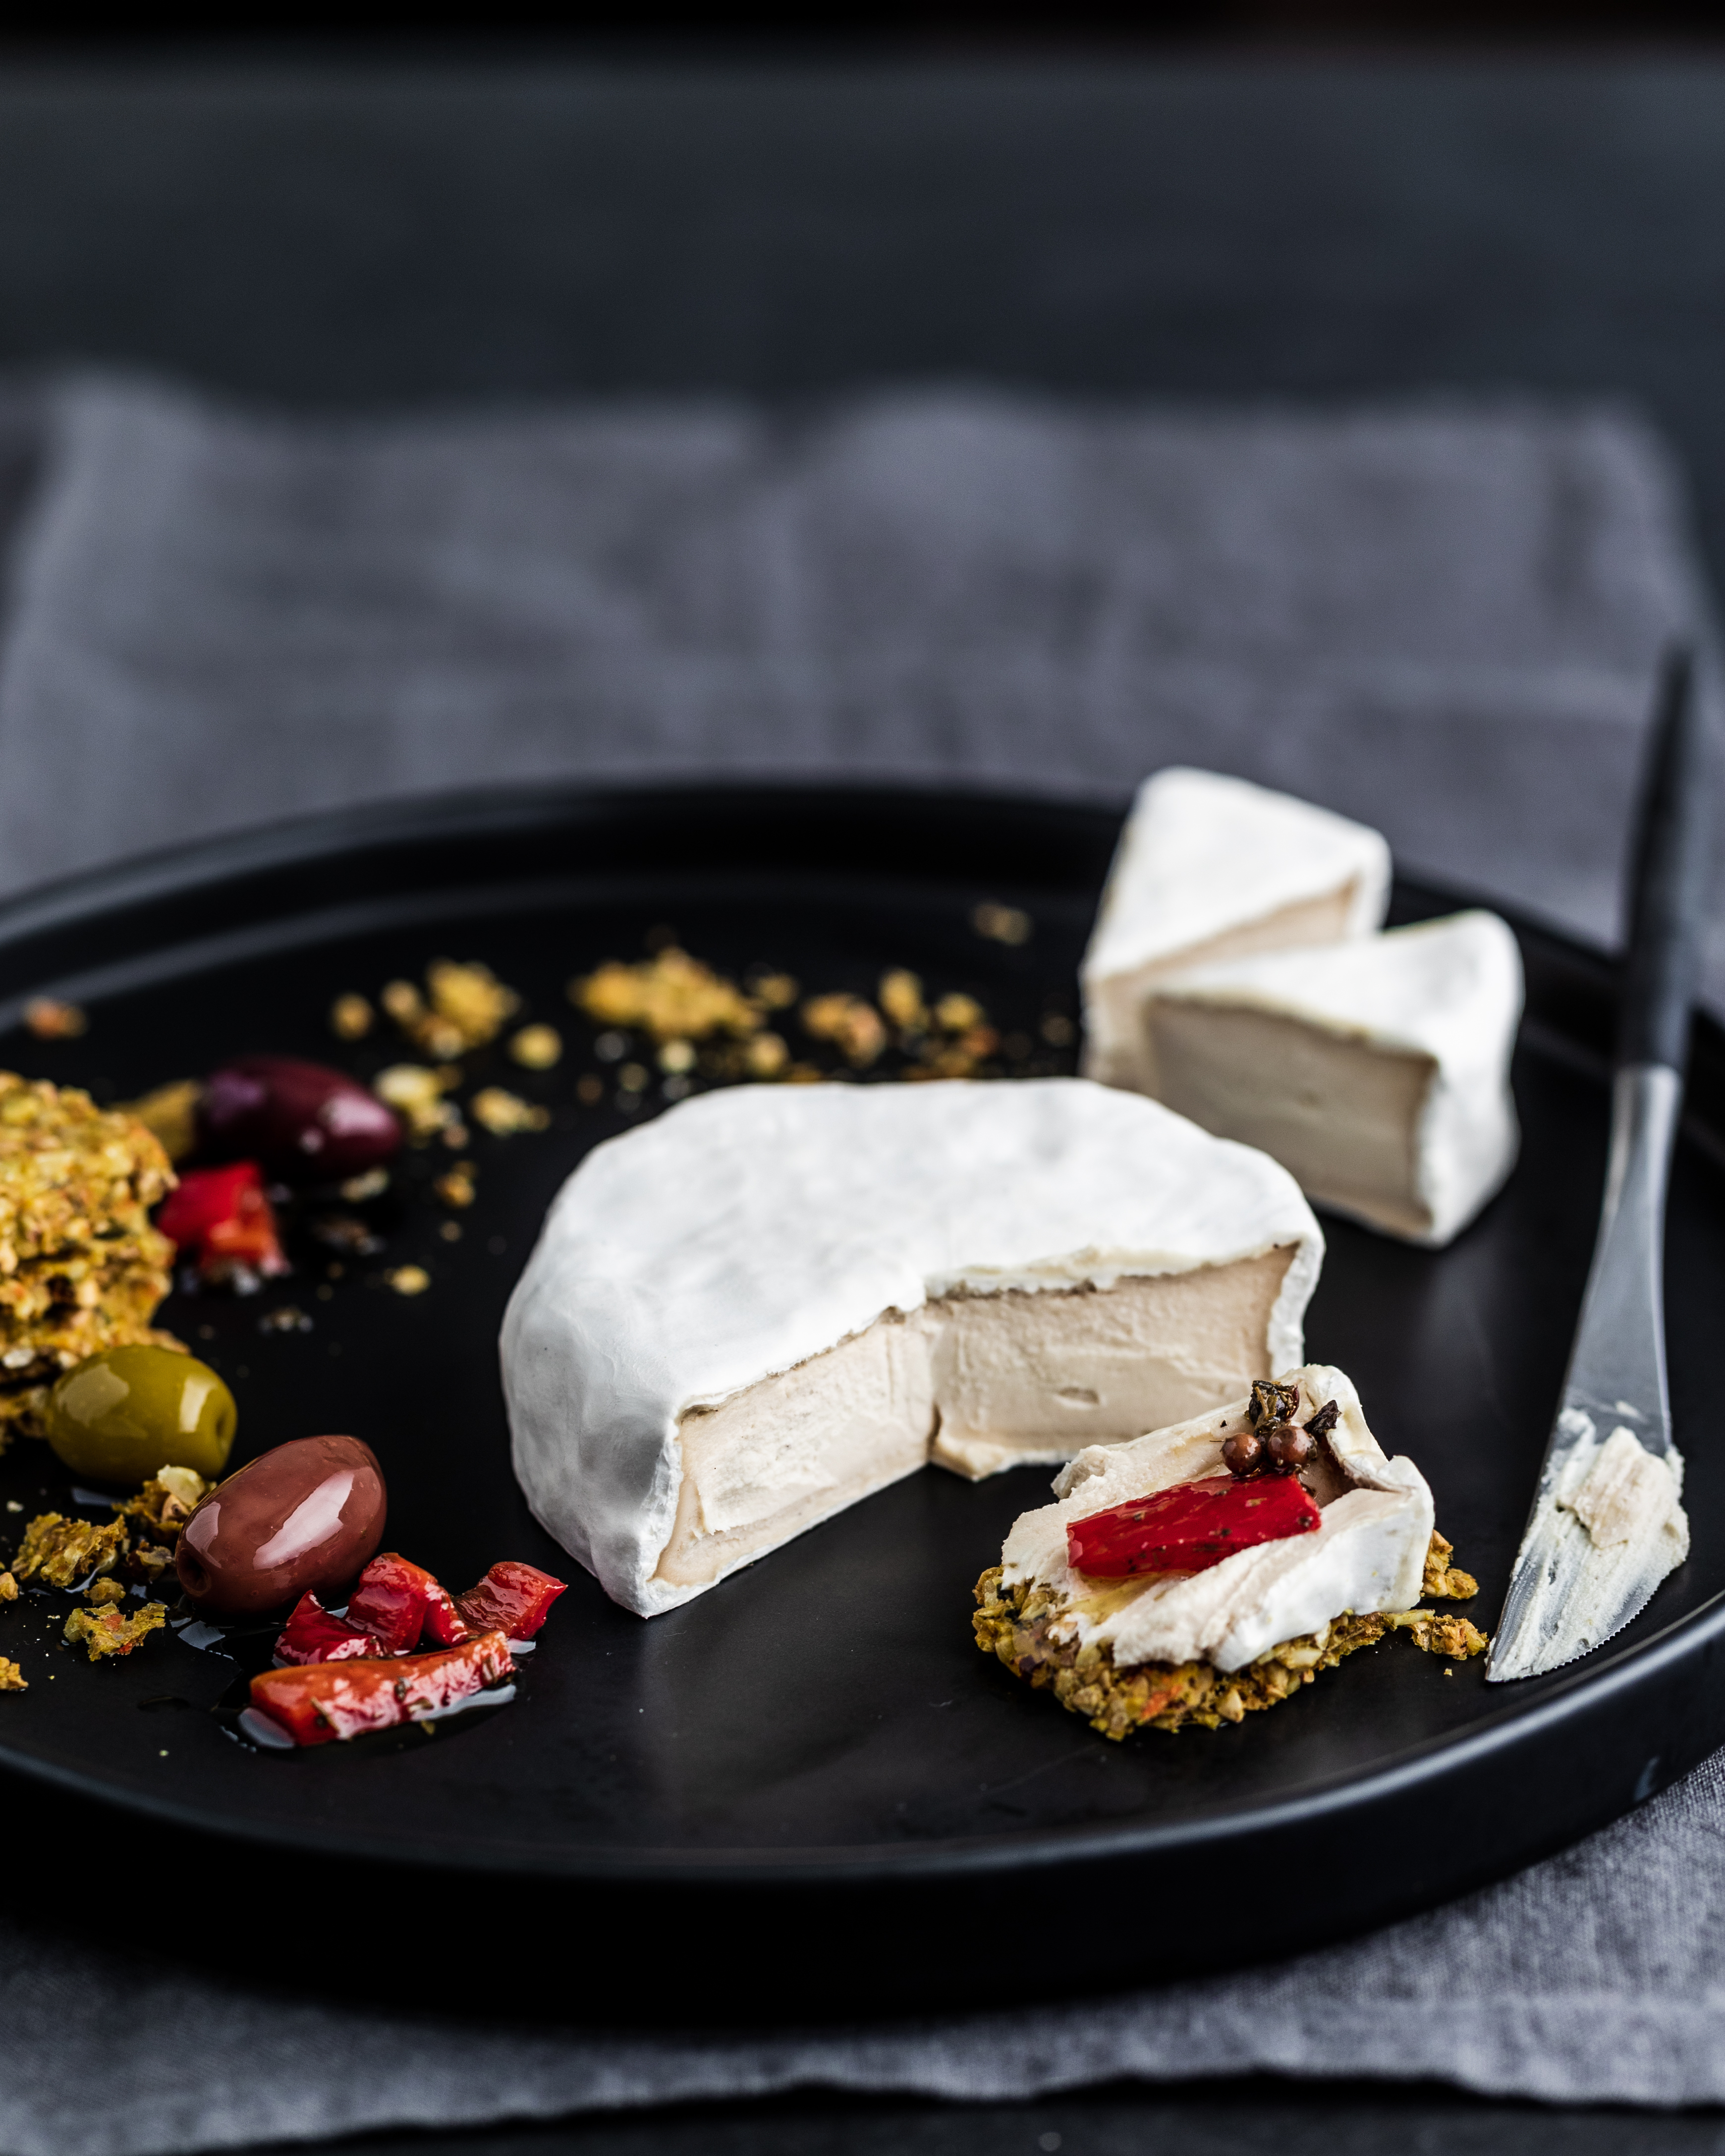 cashew nut camembert cheese on a black plate with crackers, olive and red peppers